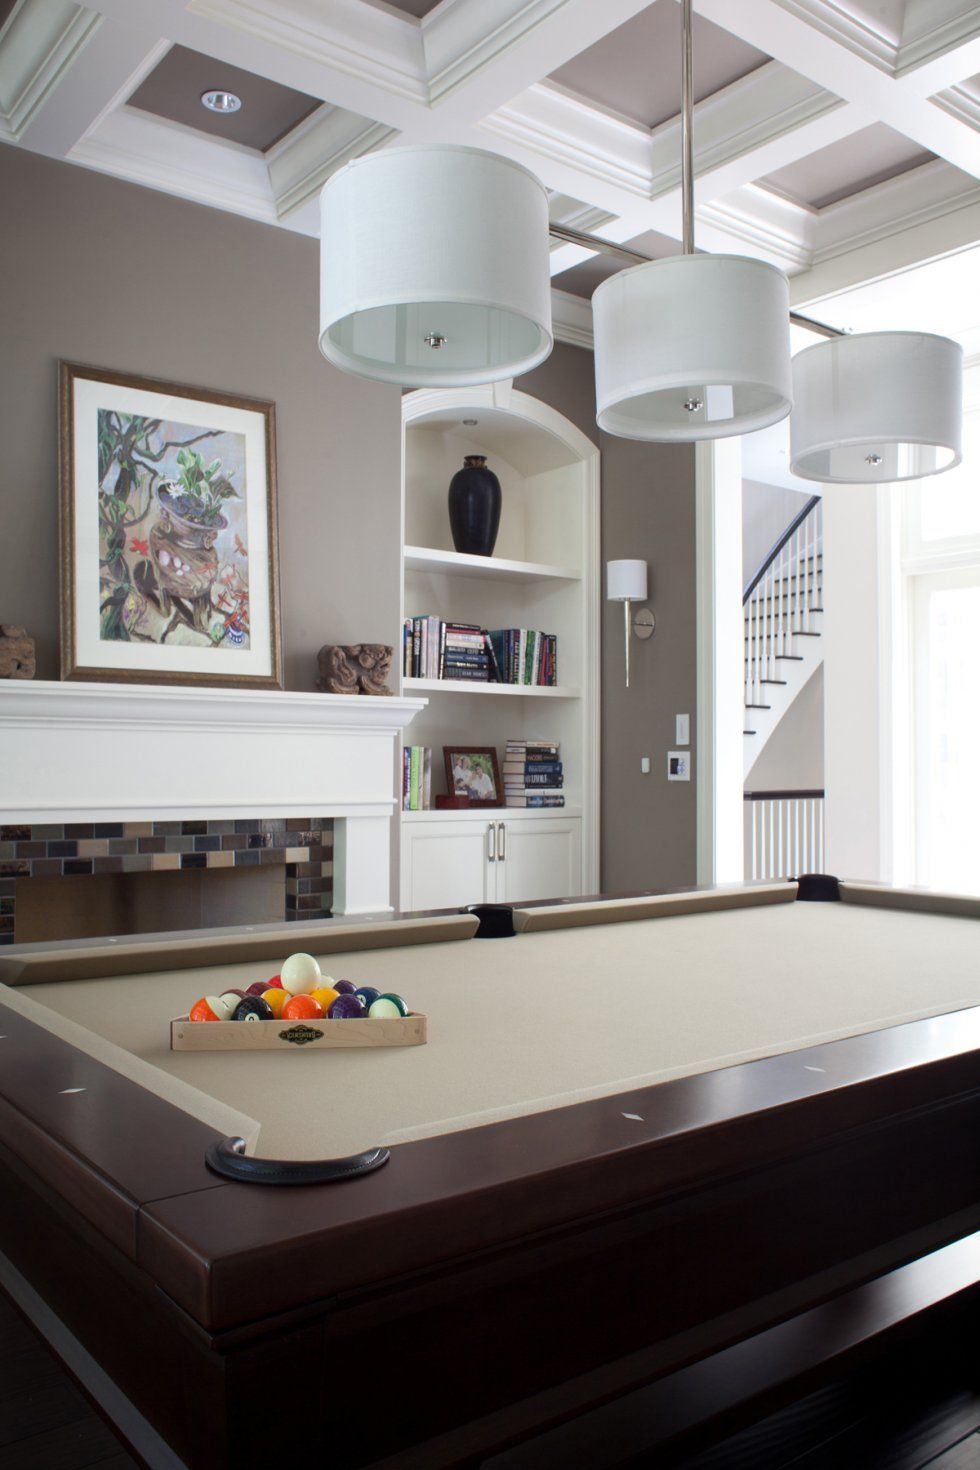 Pool Room Decorating Ideas 14 beautiful billiard rooms where you can play in style photos architectural digest Find This Pin And More On My Living New Living Space Ideas Exciting Home Billiard Room